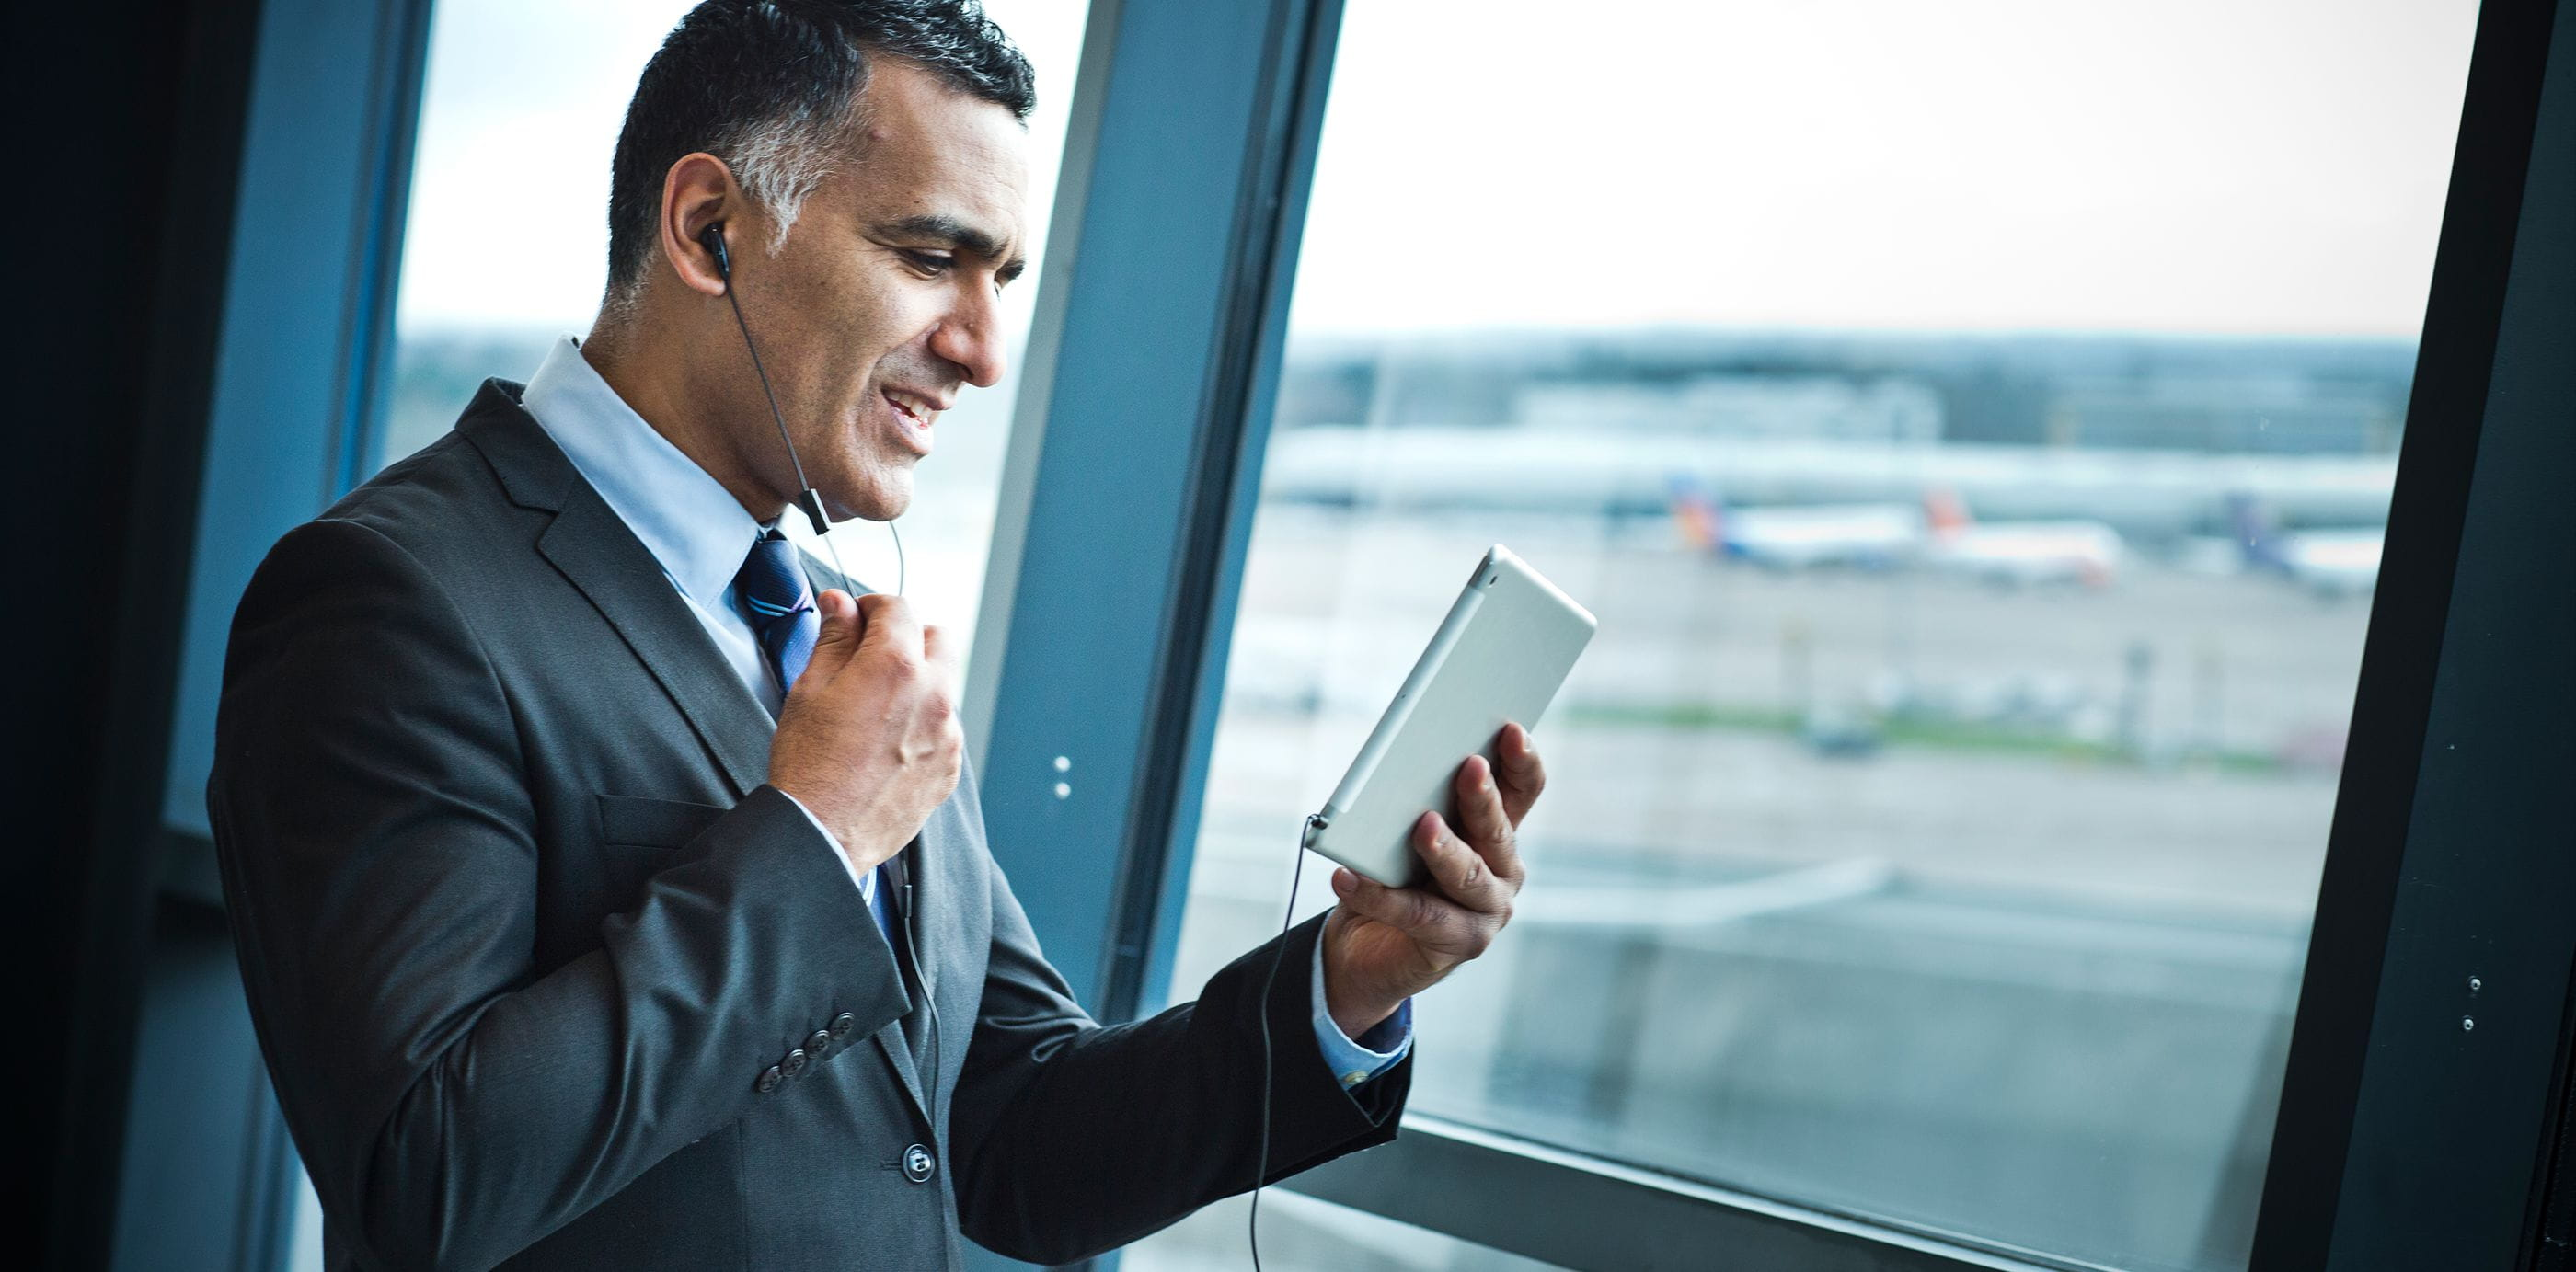 Brother OmniJoin man conducting web conference on tablet  at airport